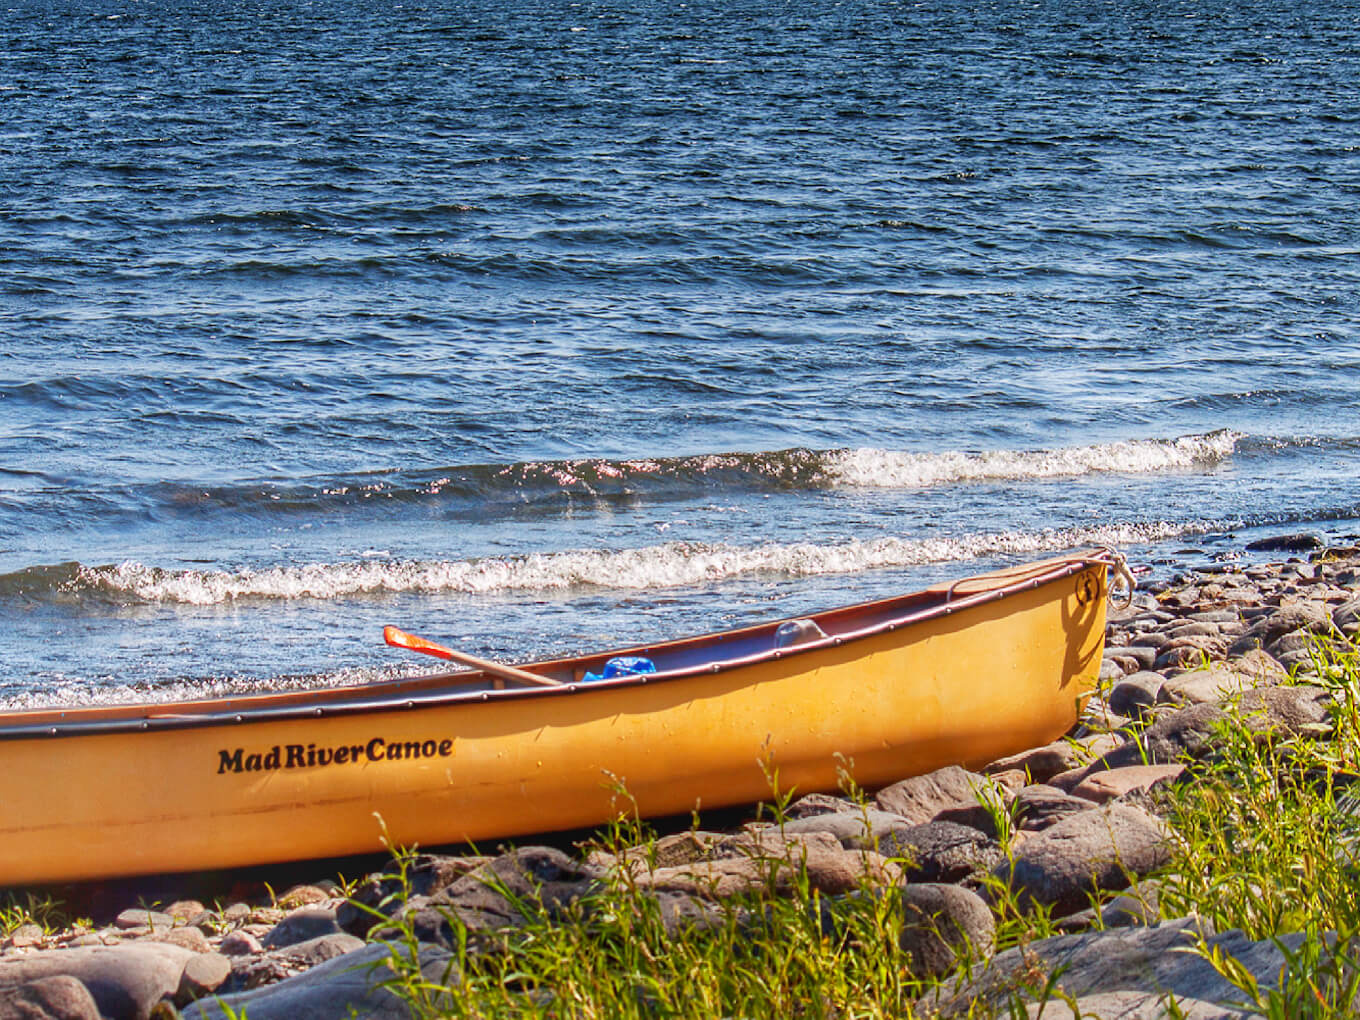 A yellow canoe on the shore of a blue lake demonstrates color contrast in photography.